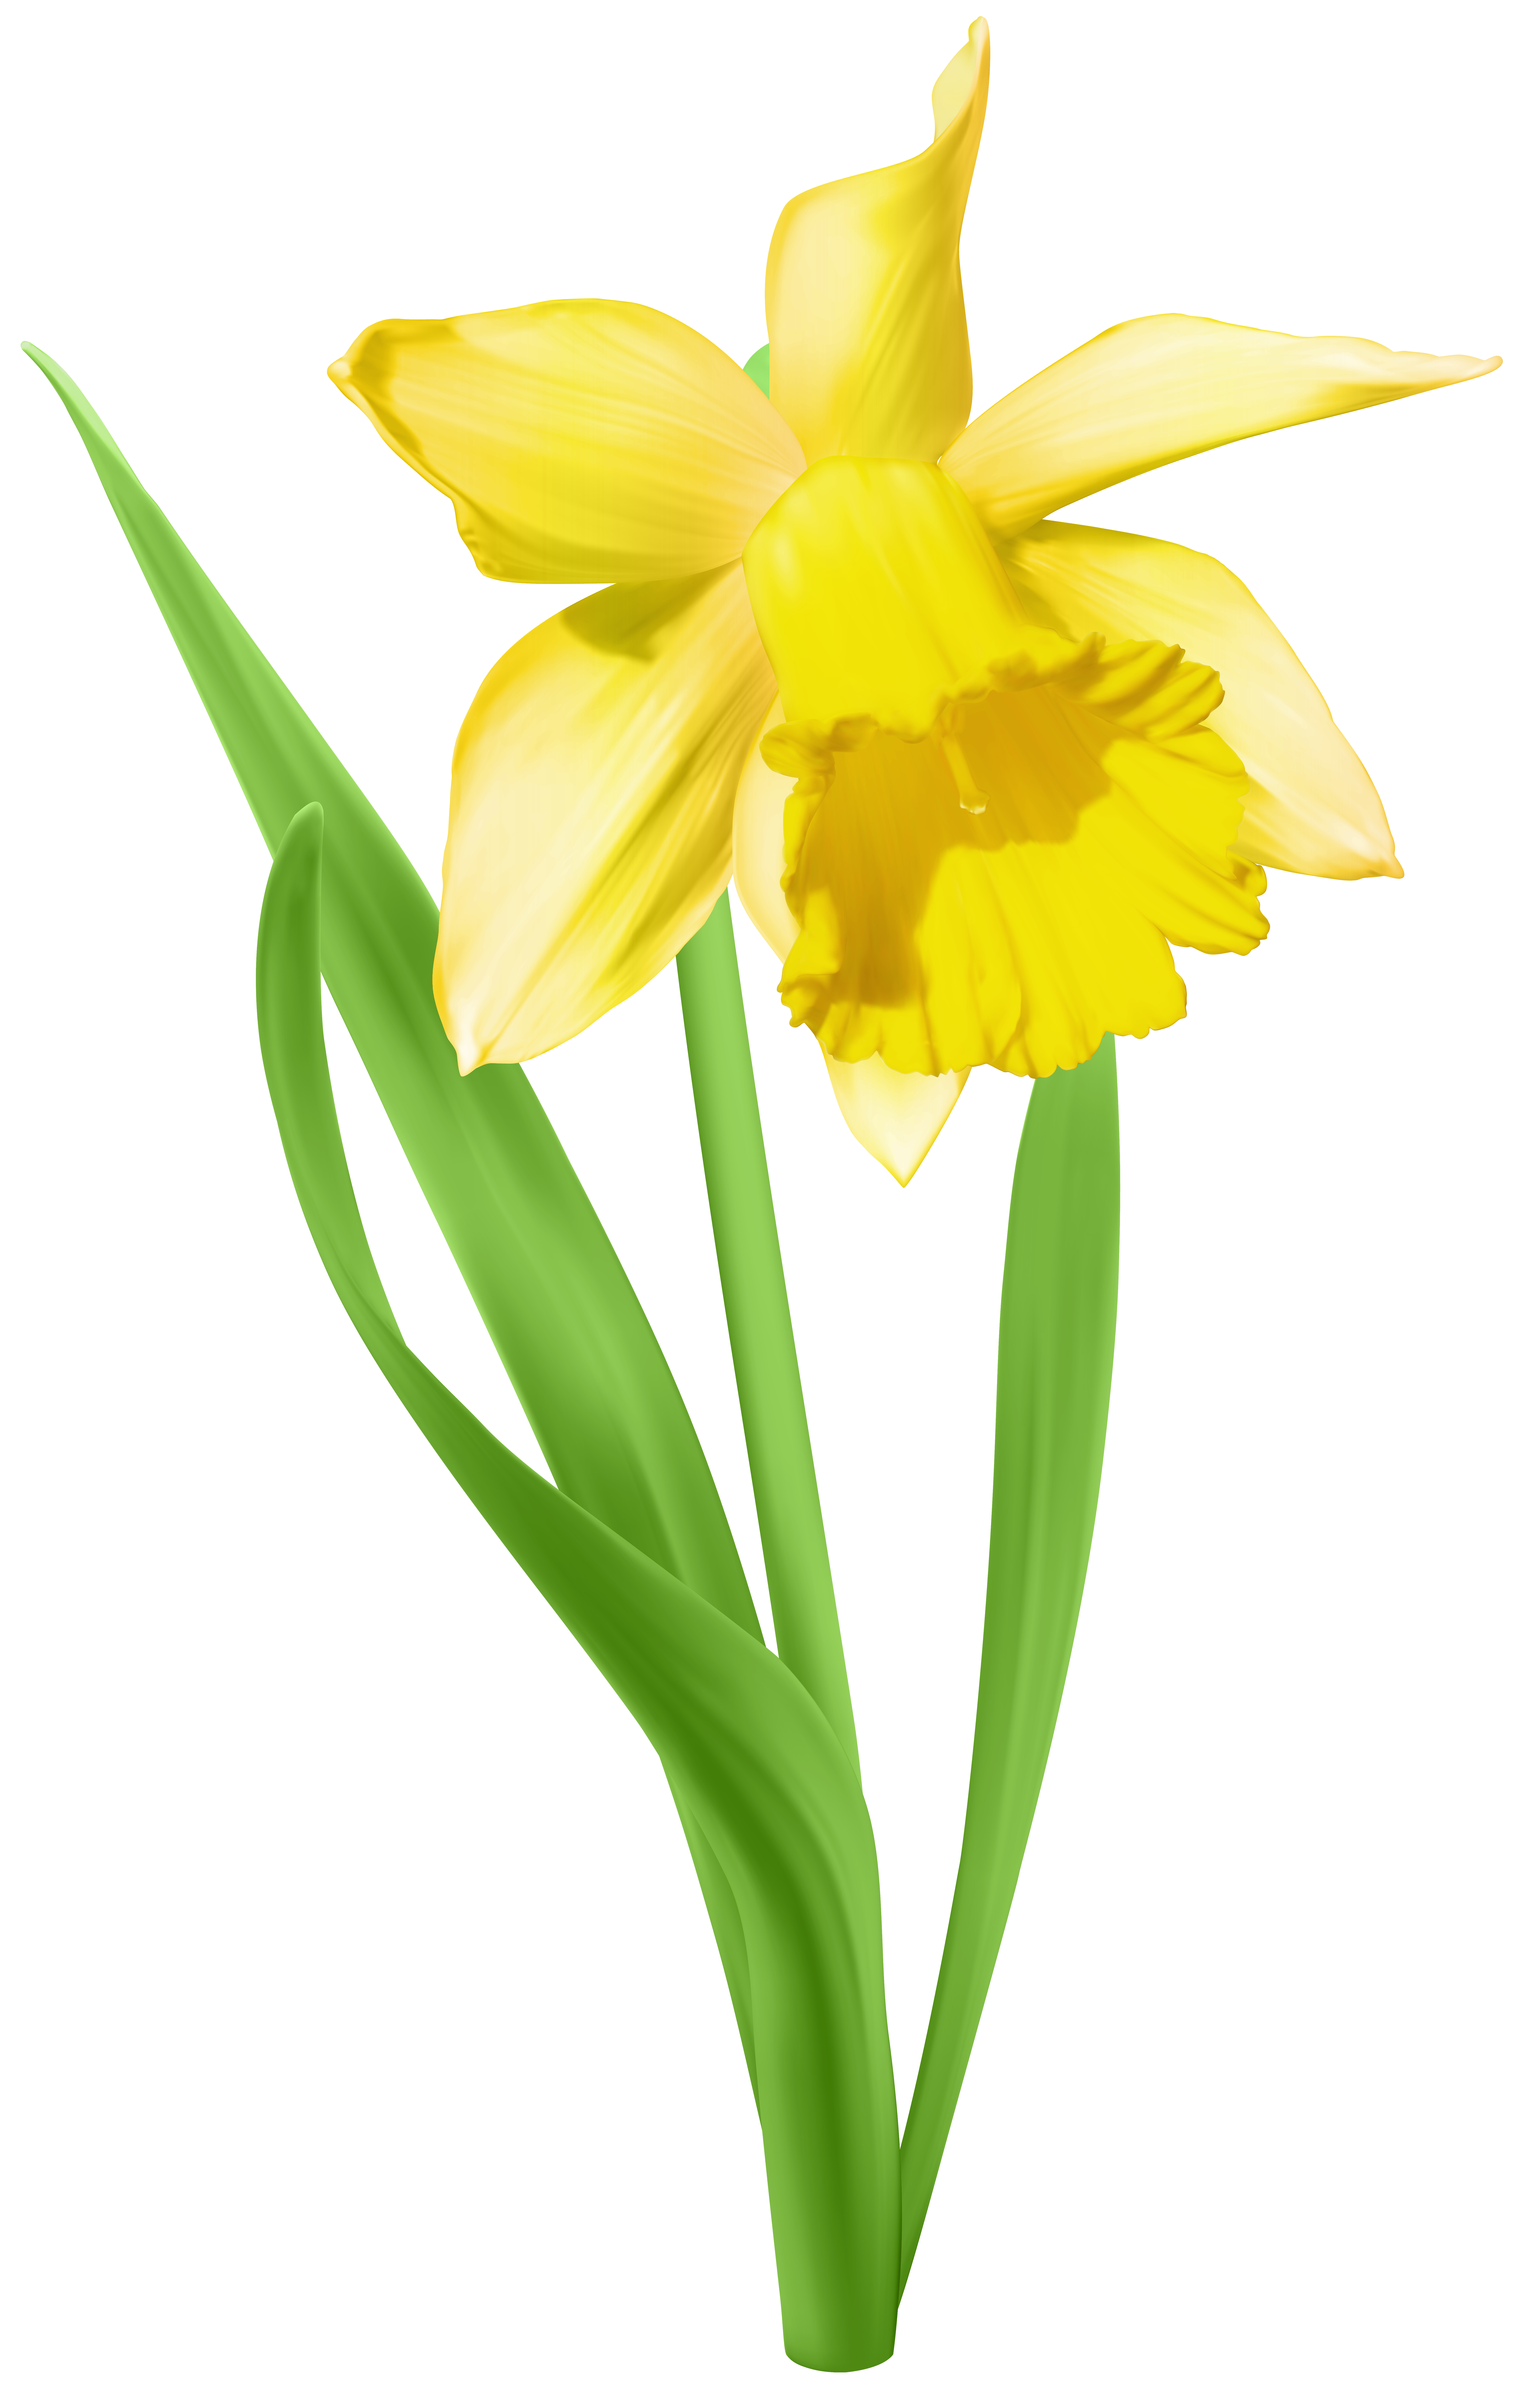 Transparent png clip art. Daffodil clipart easter image black and white stock